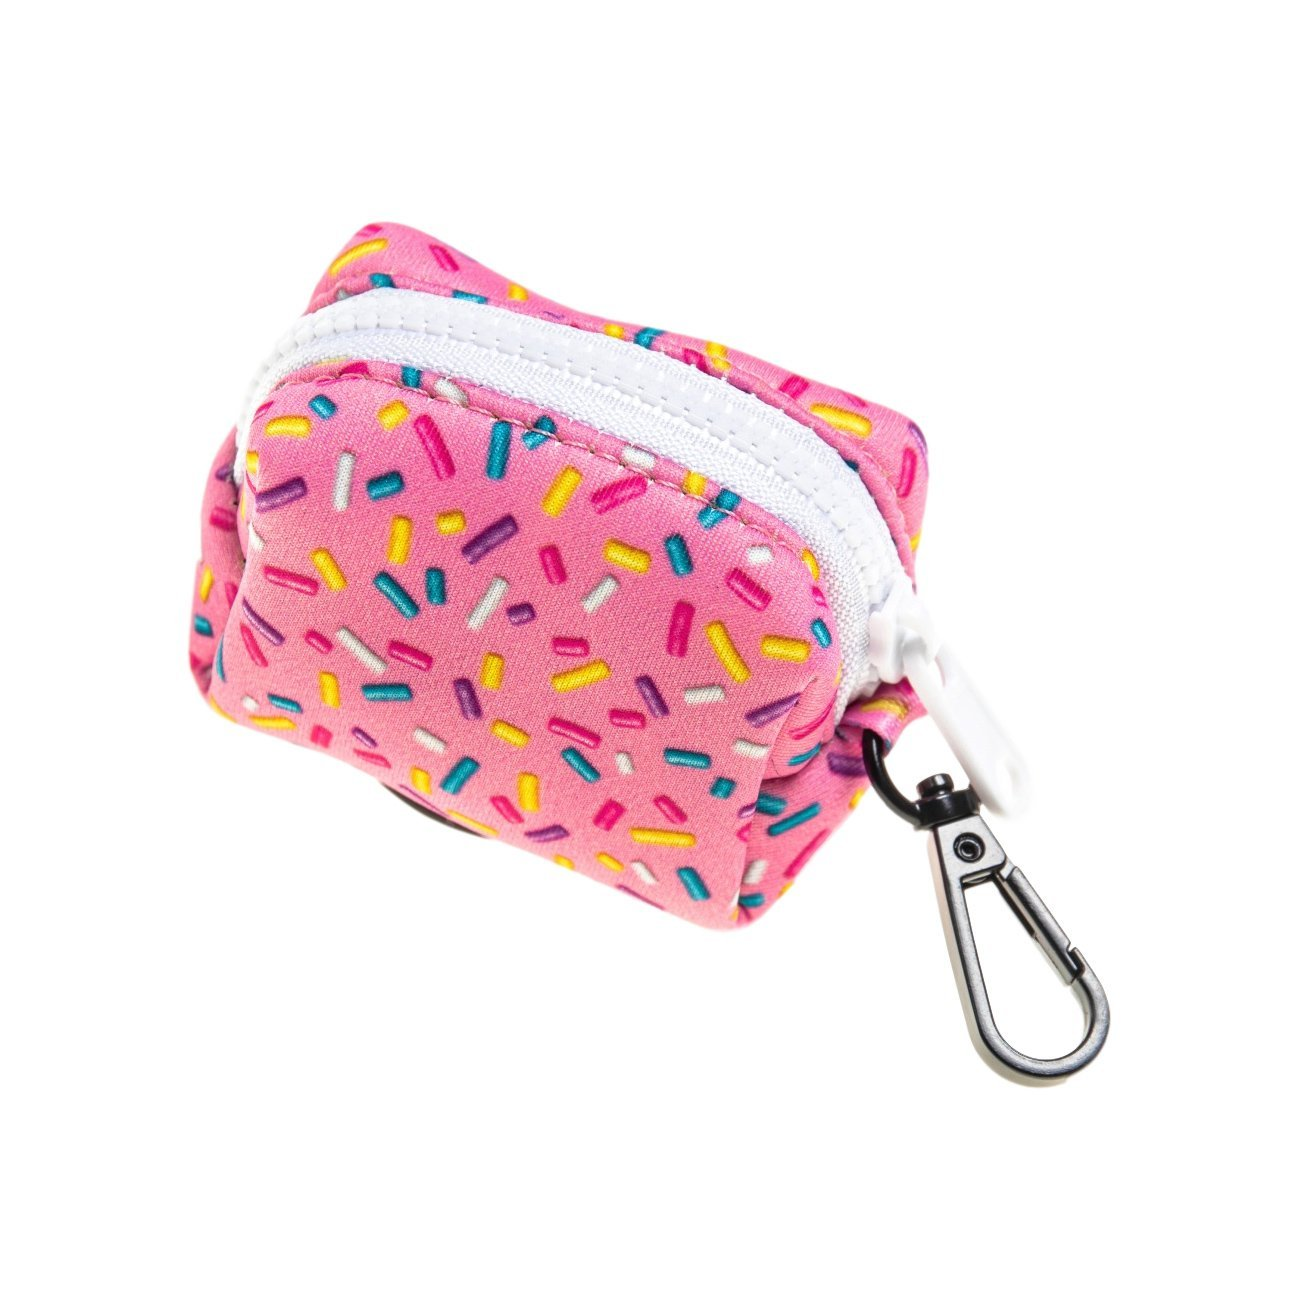 Cupcake Poop Bag Holder - Beast & Buckle